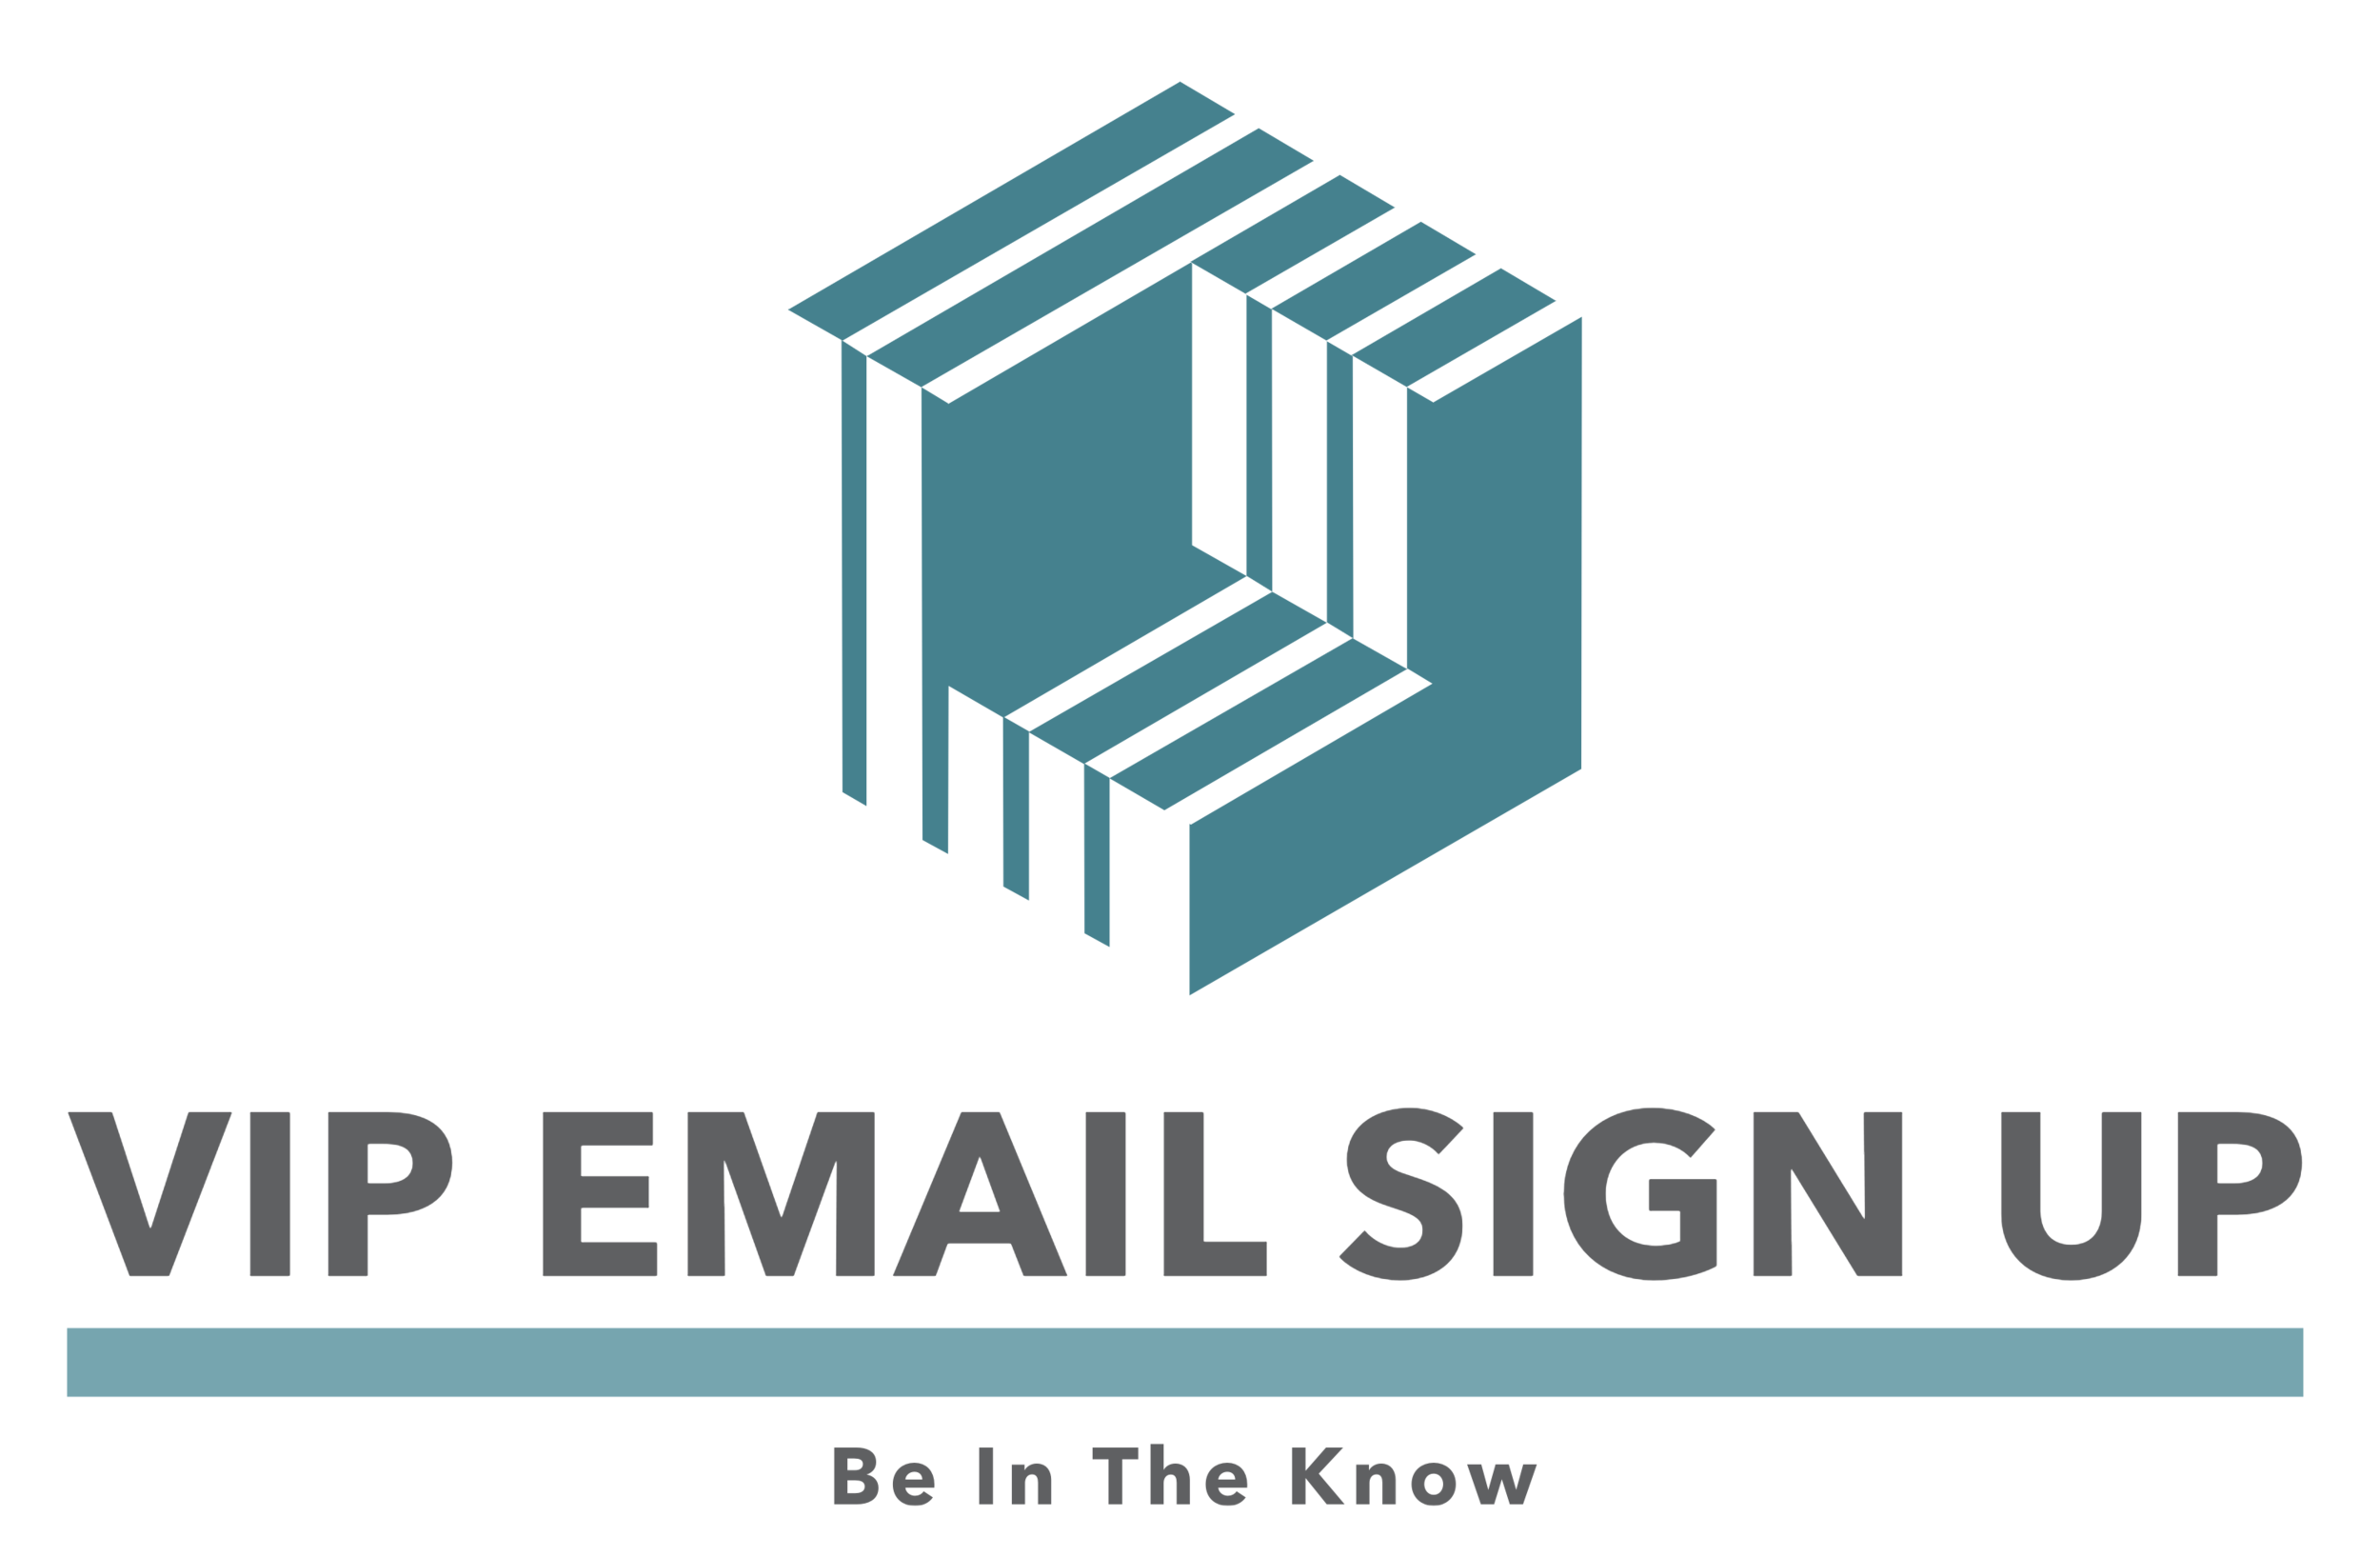 VIP EMAIL SIGN UP